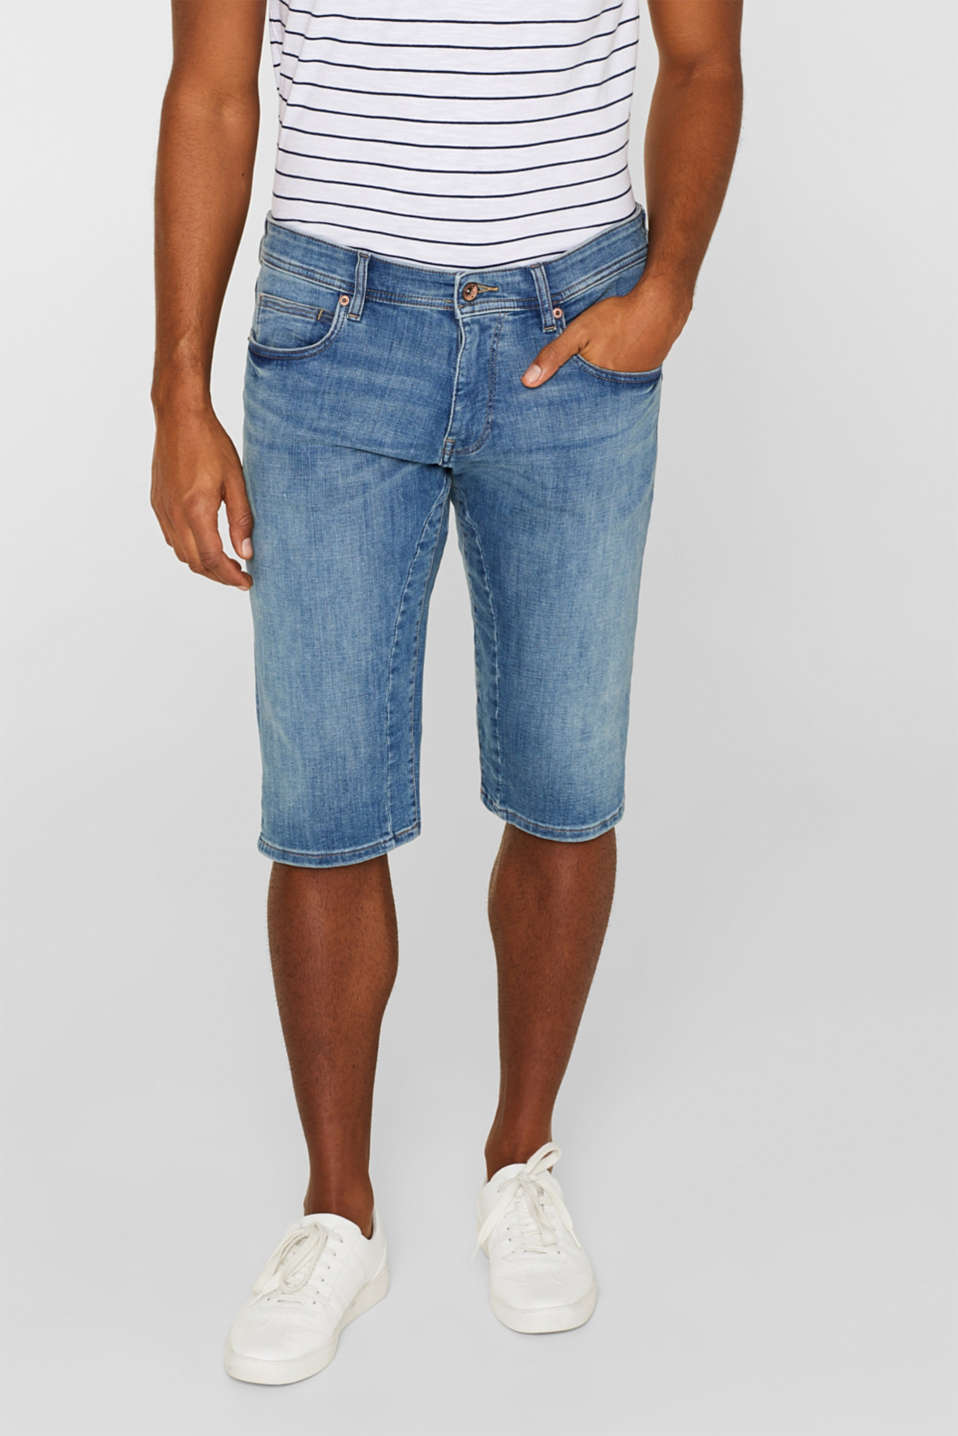 Esprit - Stretch denim shorts containing organic cotton